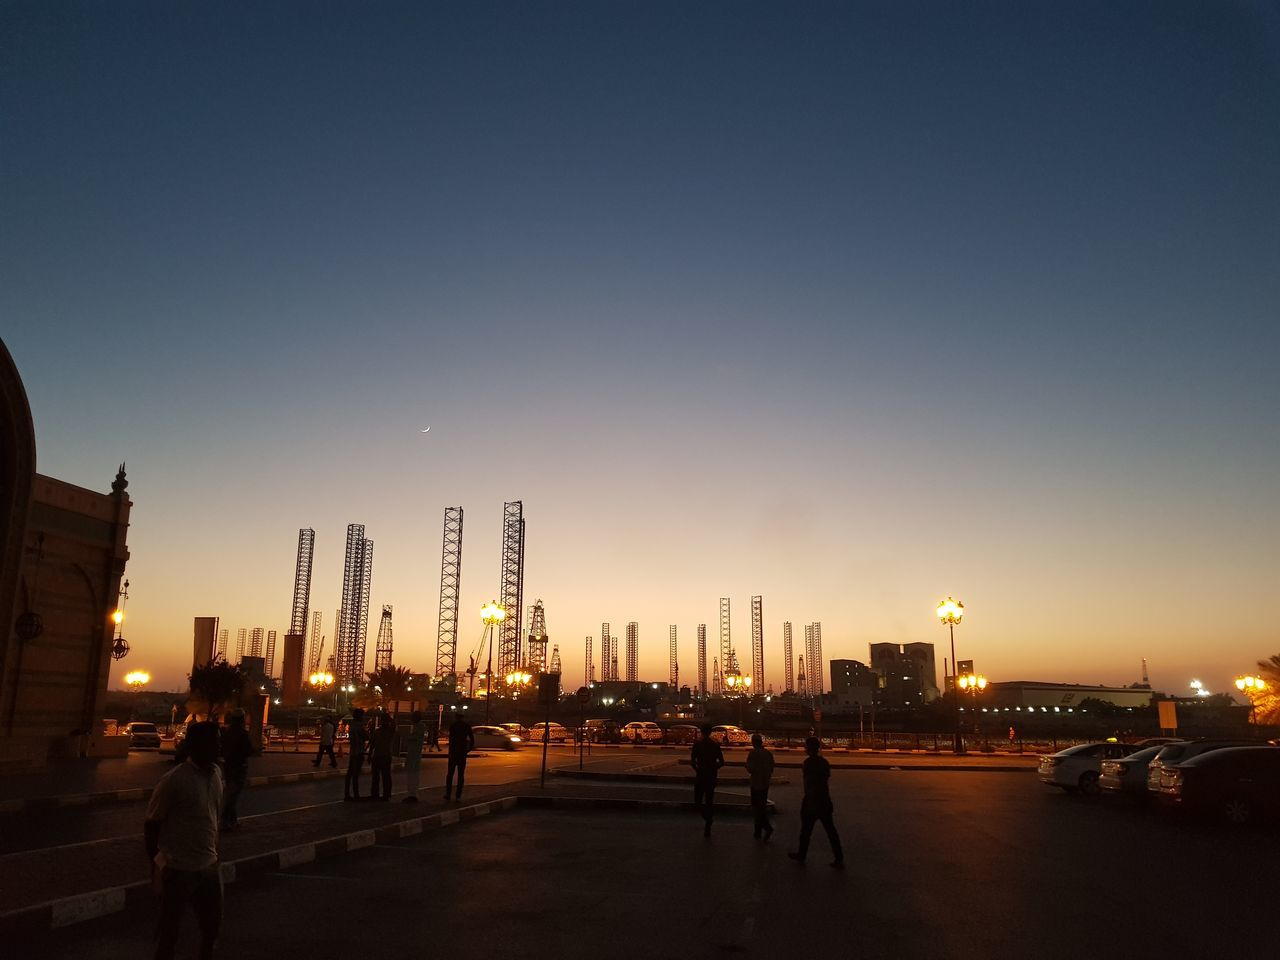 architecture, sunset, built structure, building exterior, city, skyscraper, real people, sky, clear sky, men, cityscape, lifestyles, travel destinations, illuminated, outdoors, women, modern, urban skyline, night, people